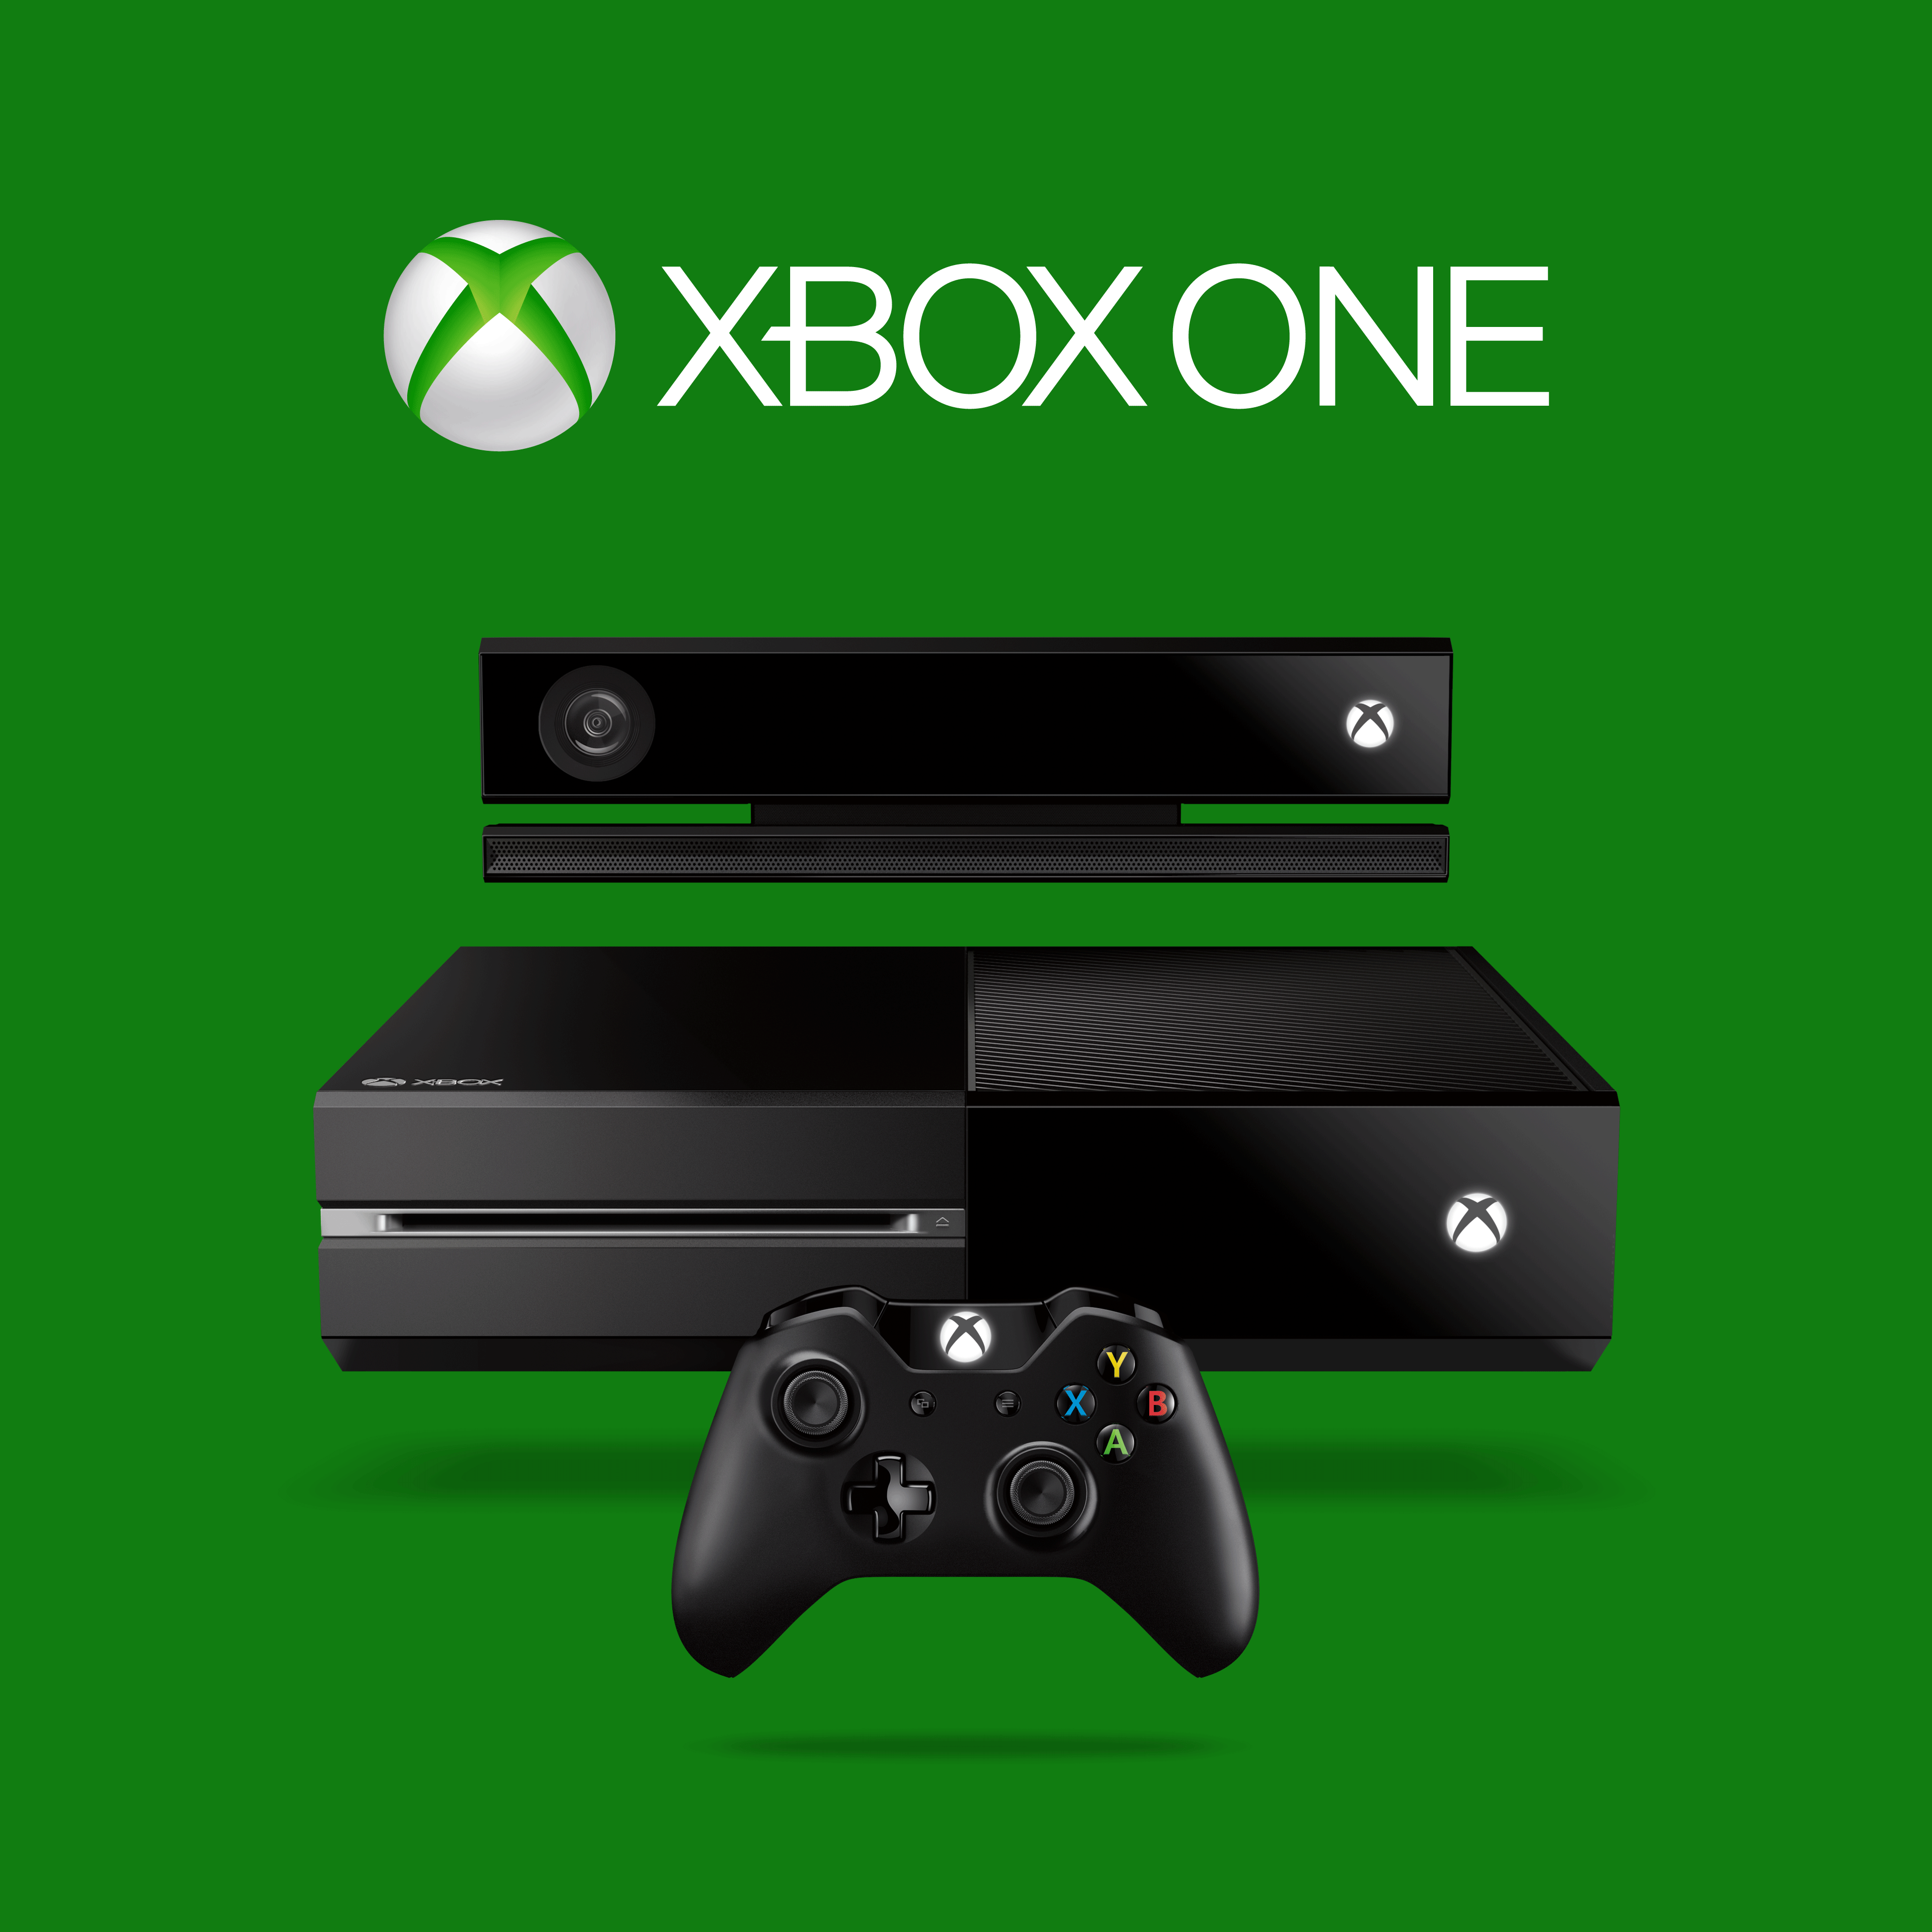 Xboxconsole.png